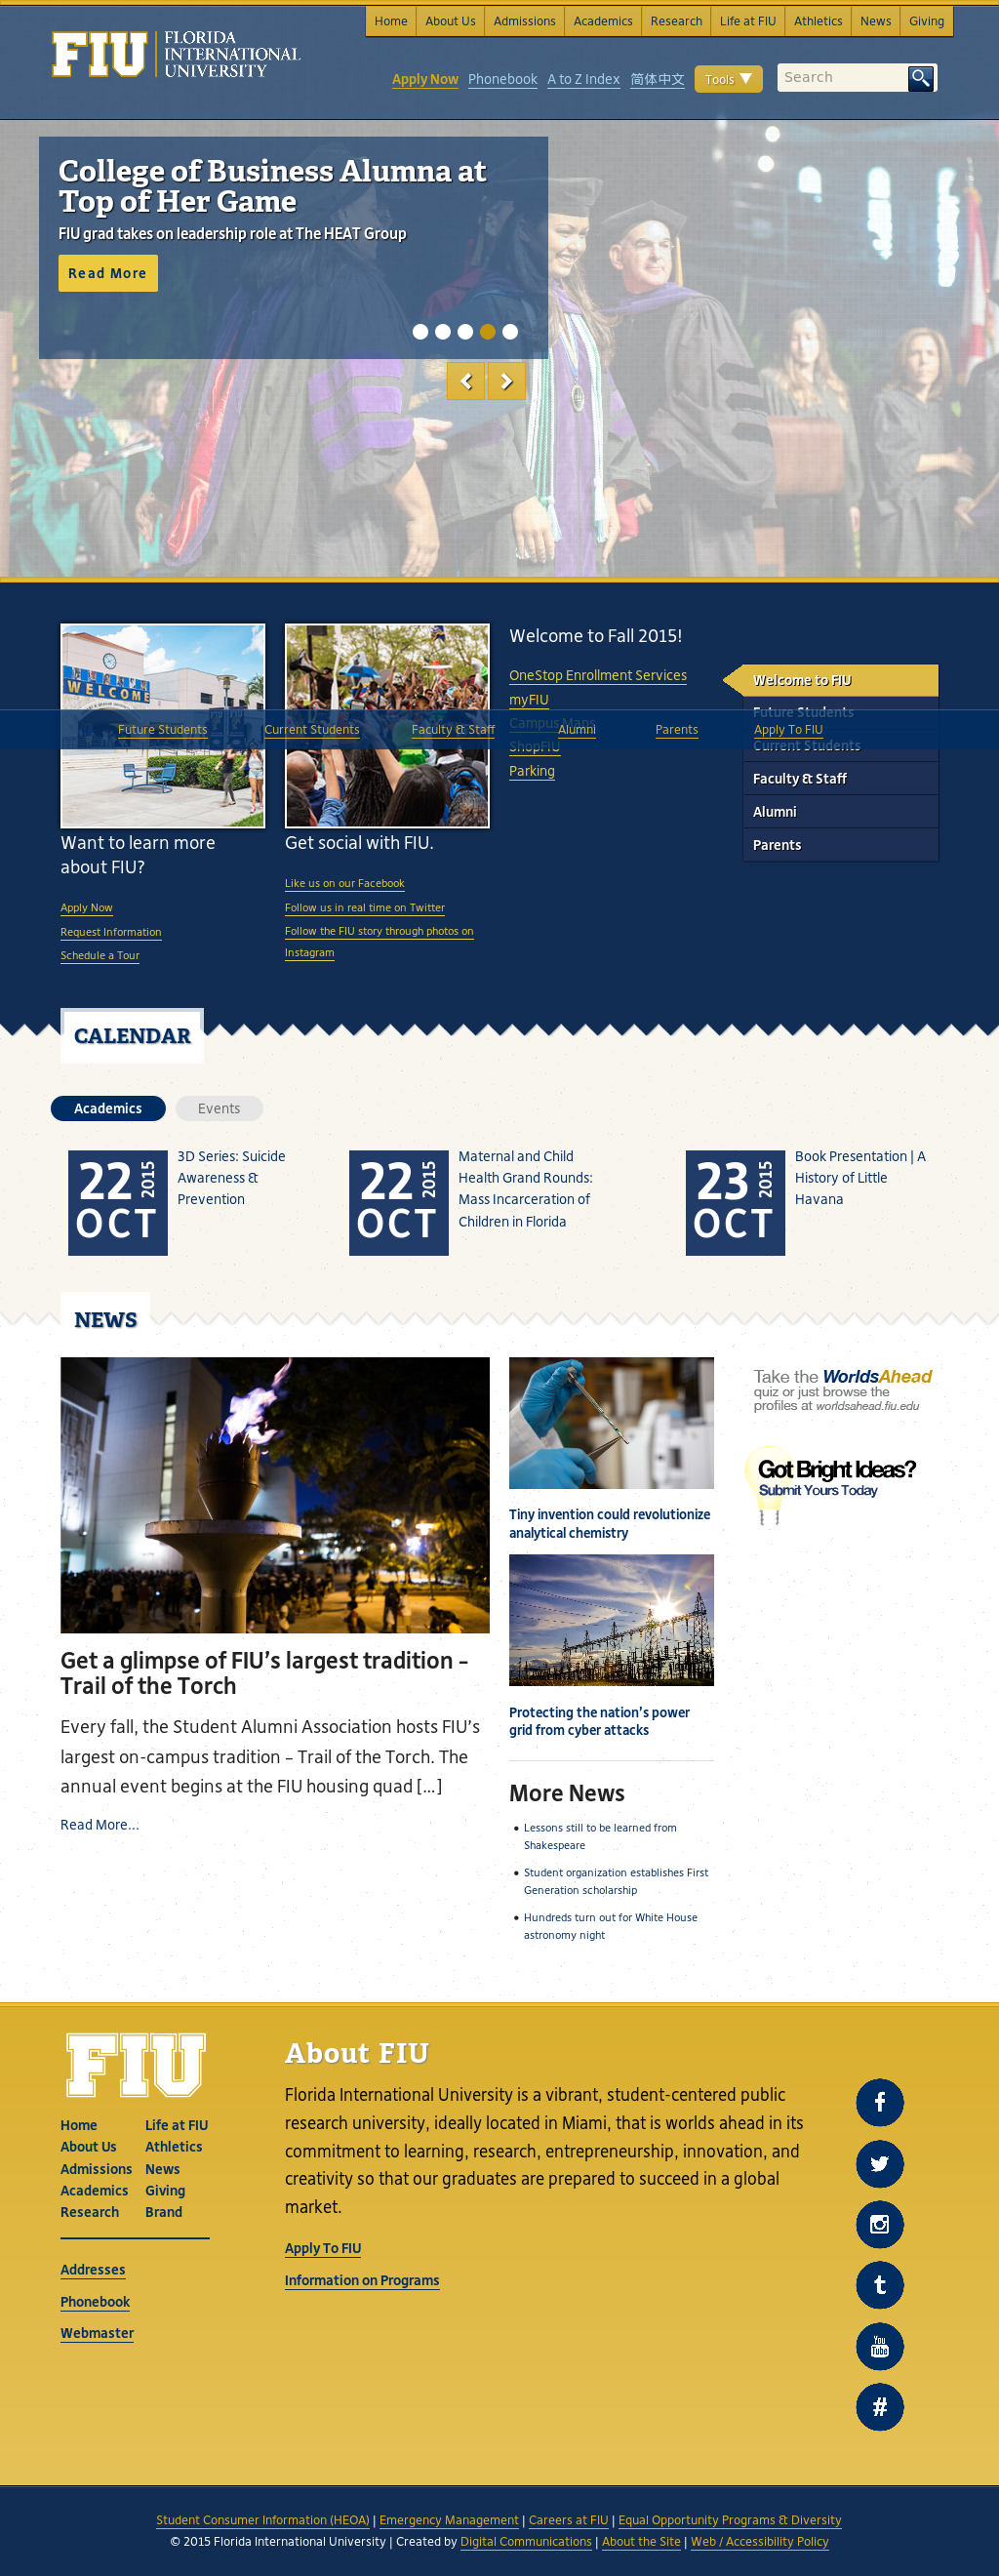 corporation and florida international university essay Florida international university is a vibrant, student-centered public research university, ideally located in miami, that is worlds ahead in its commitment to.